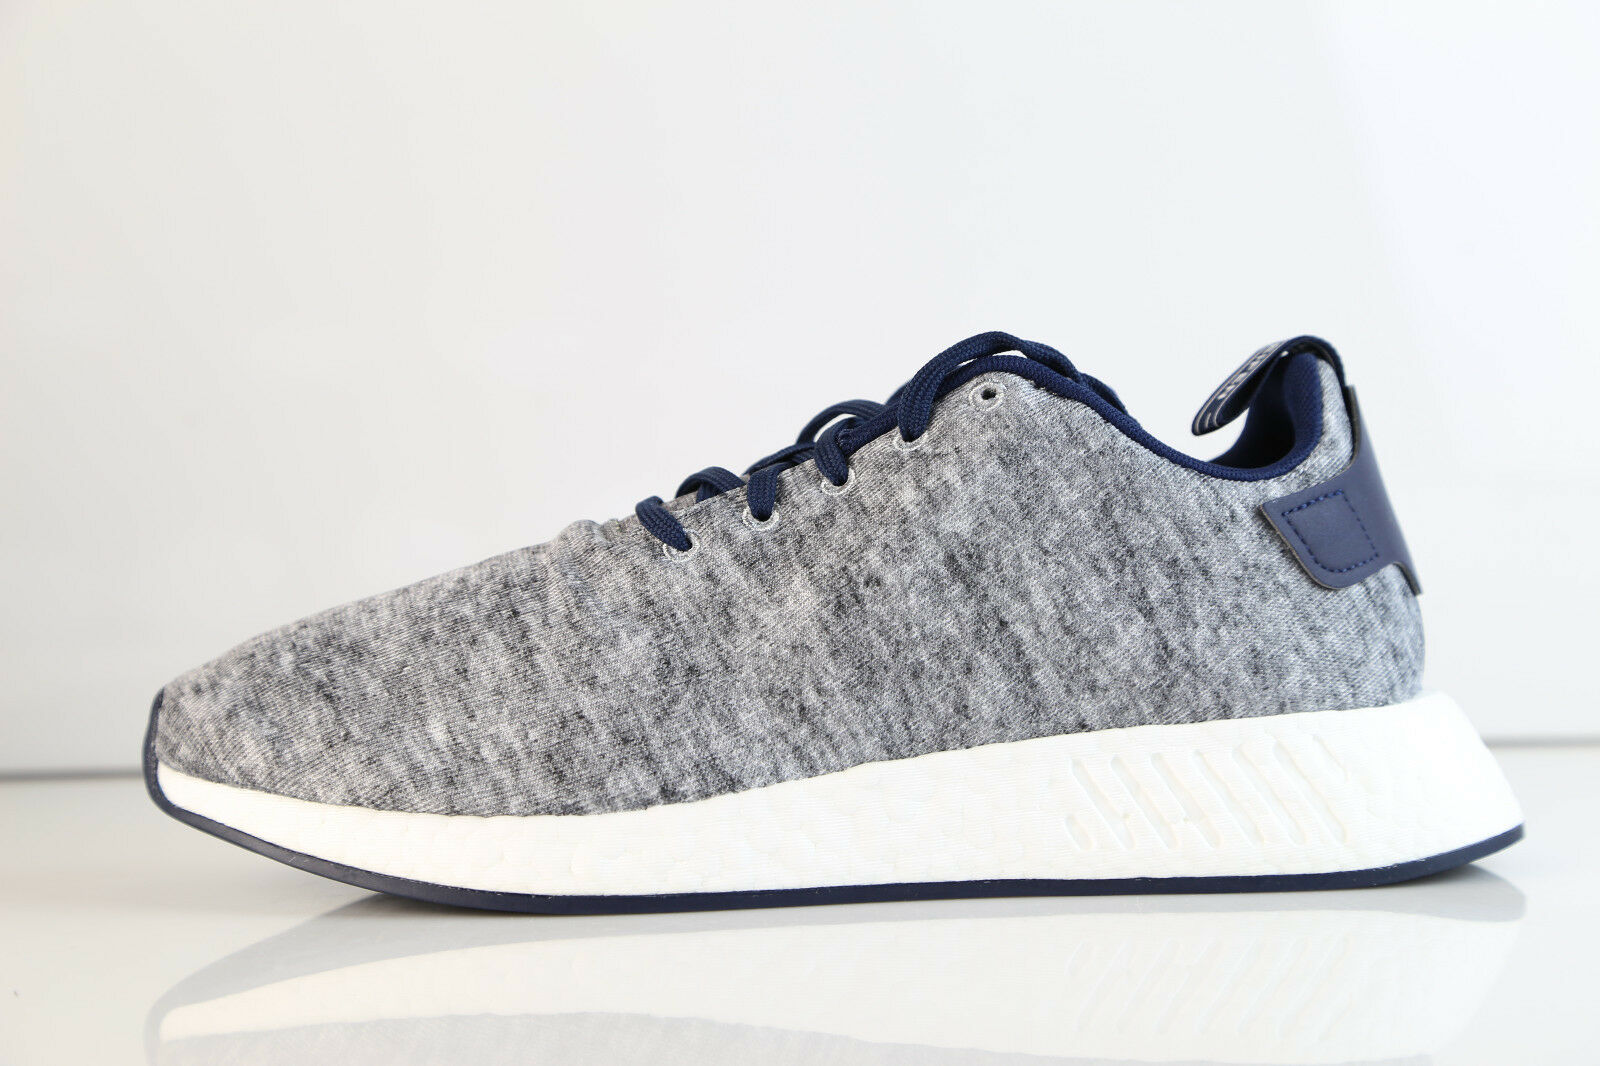 Adidas United Arrows & Sons NMD R2 PK UAS Heather Grey DA8834 8-13 boost ua 1